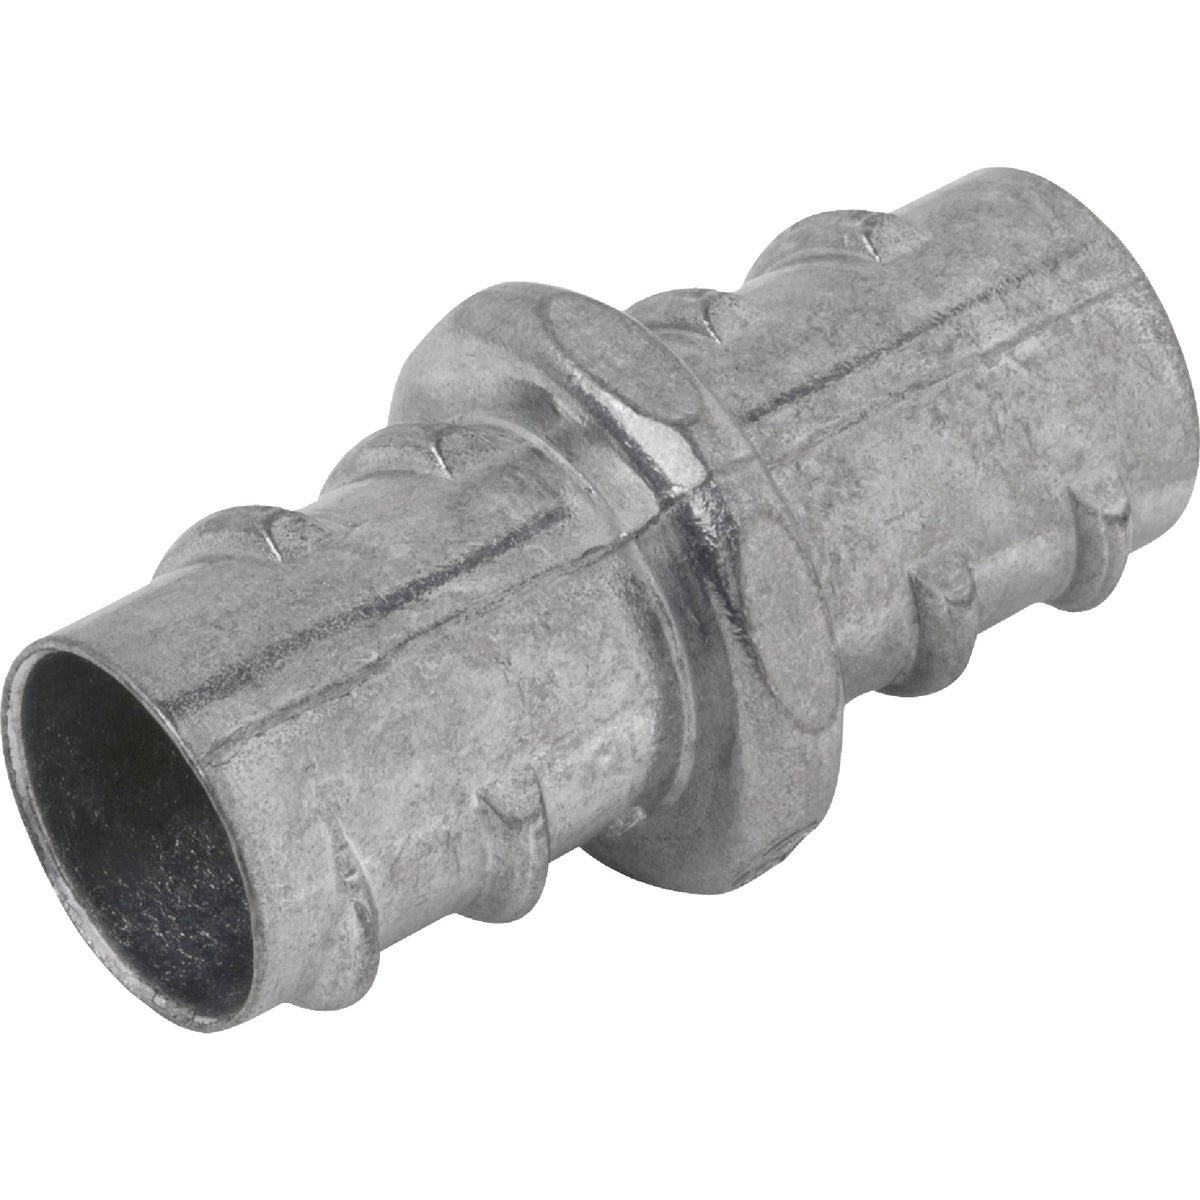 "1/2"" FLEX COUPLING - XK2411 by Thomas & Betts"